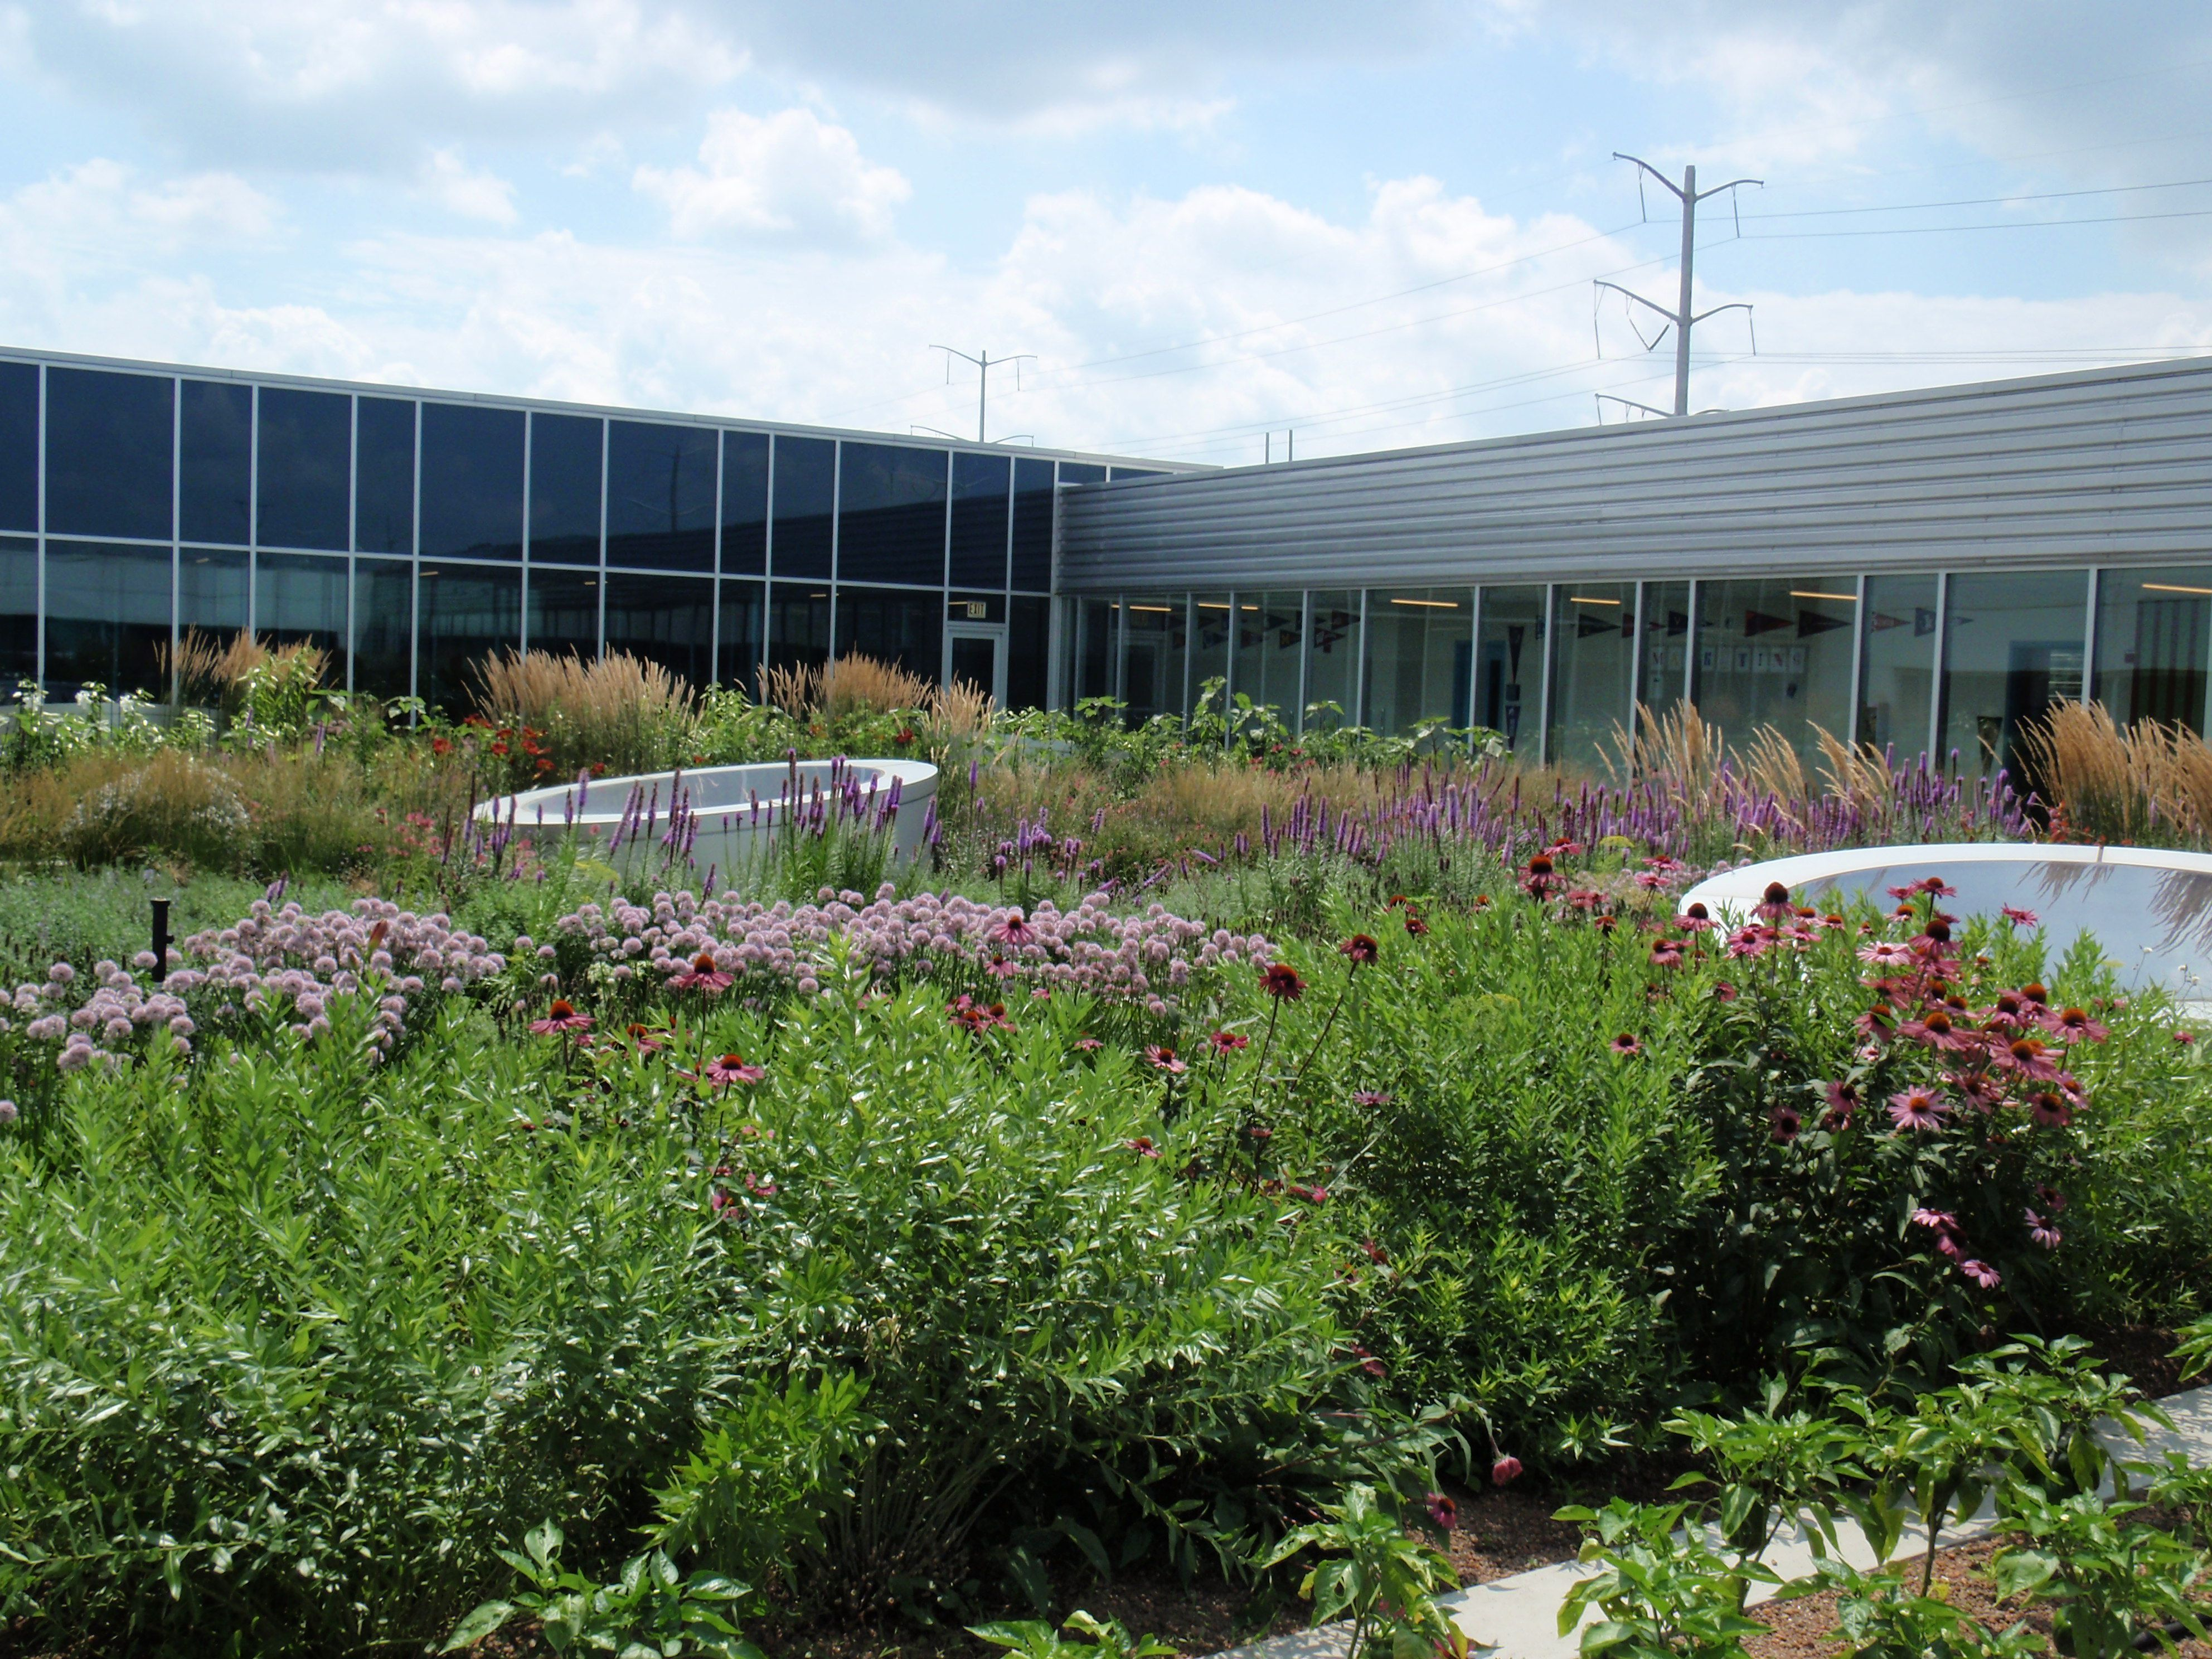 Rooftop Garden at the Gary Comer Youth Center in Chicago